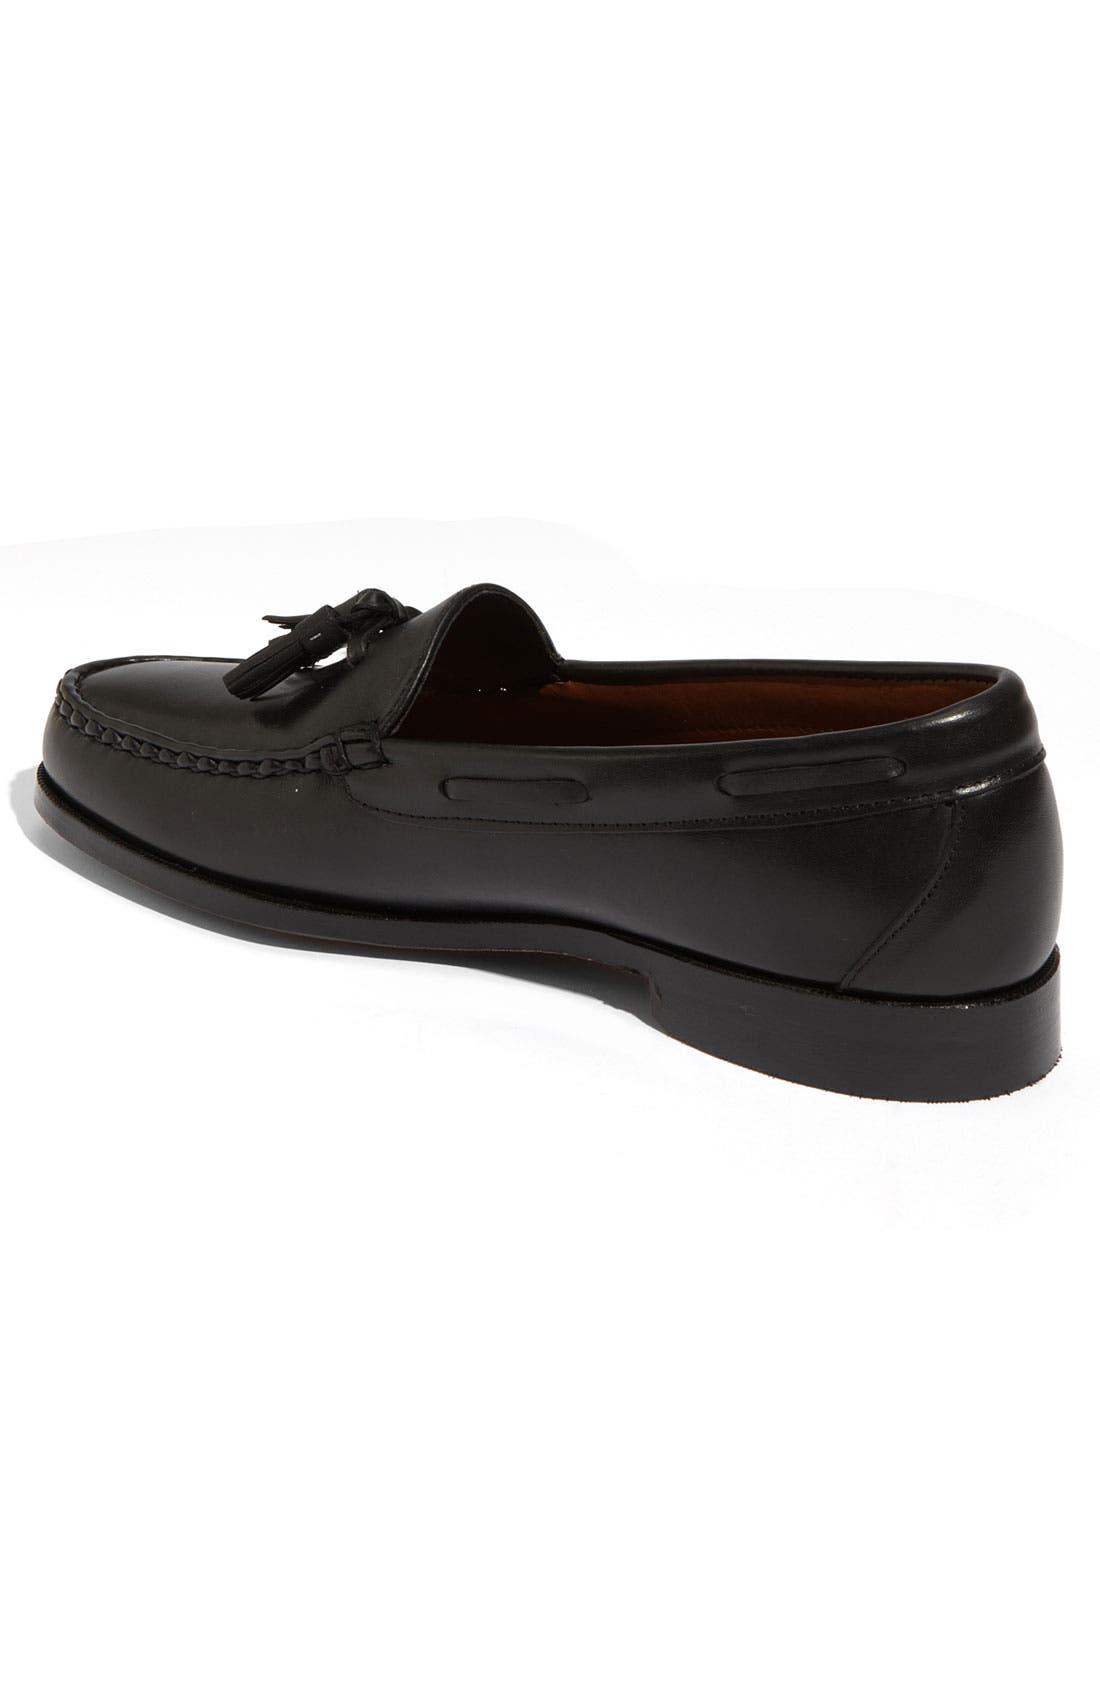 Alternate Image 2  - Allen Edmonds 'Naples' Loafer